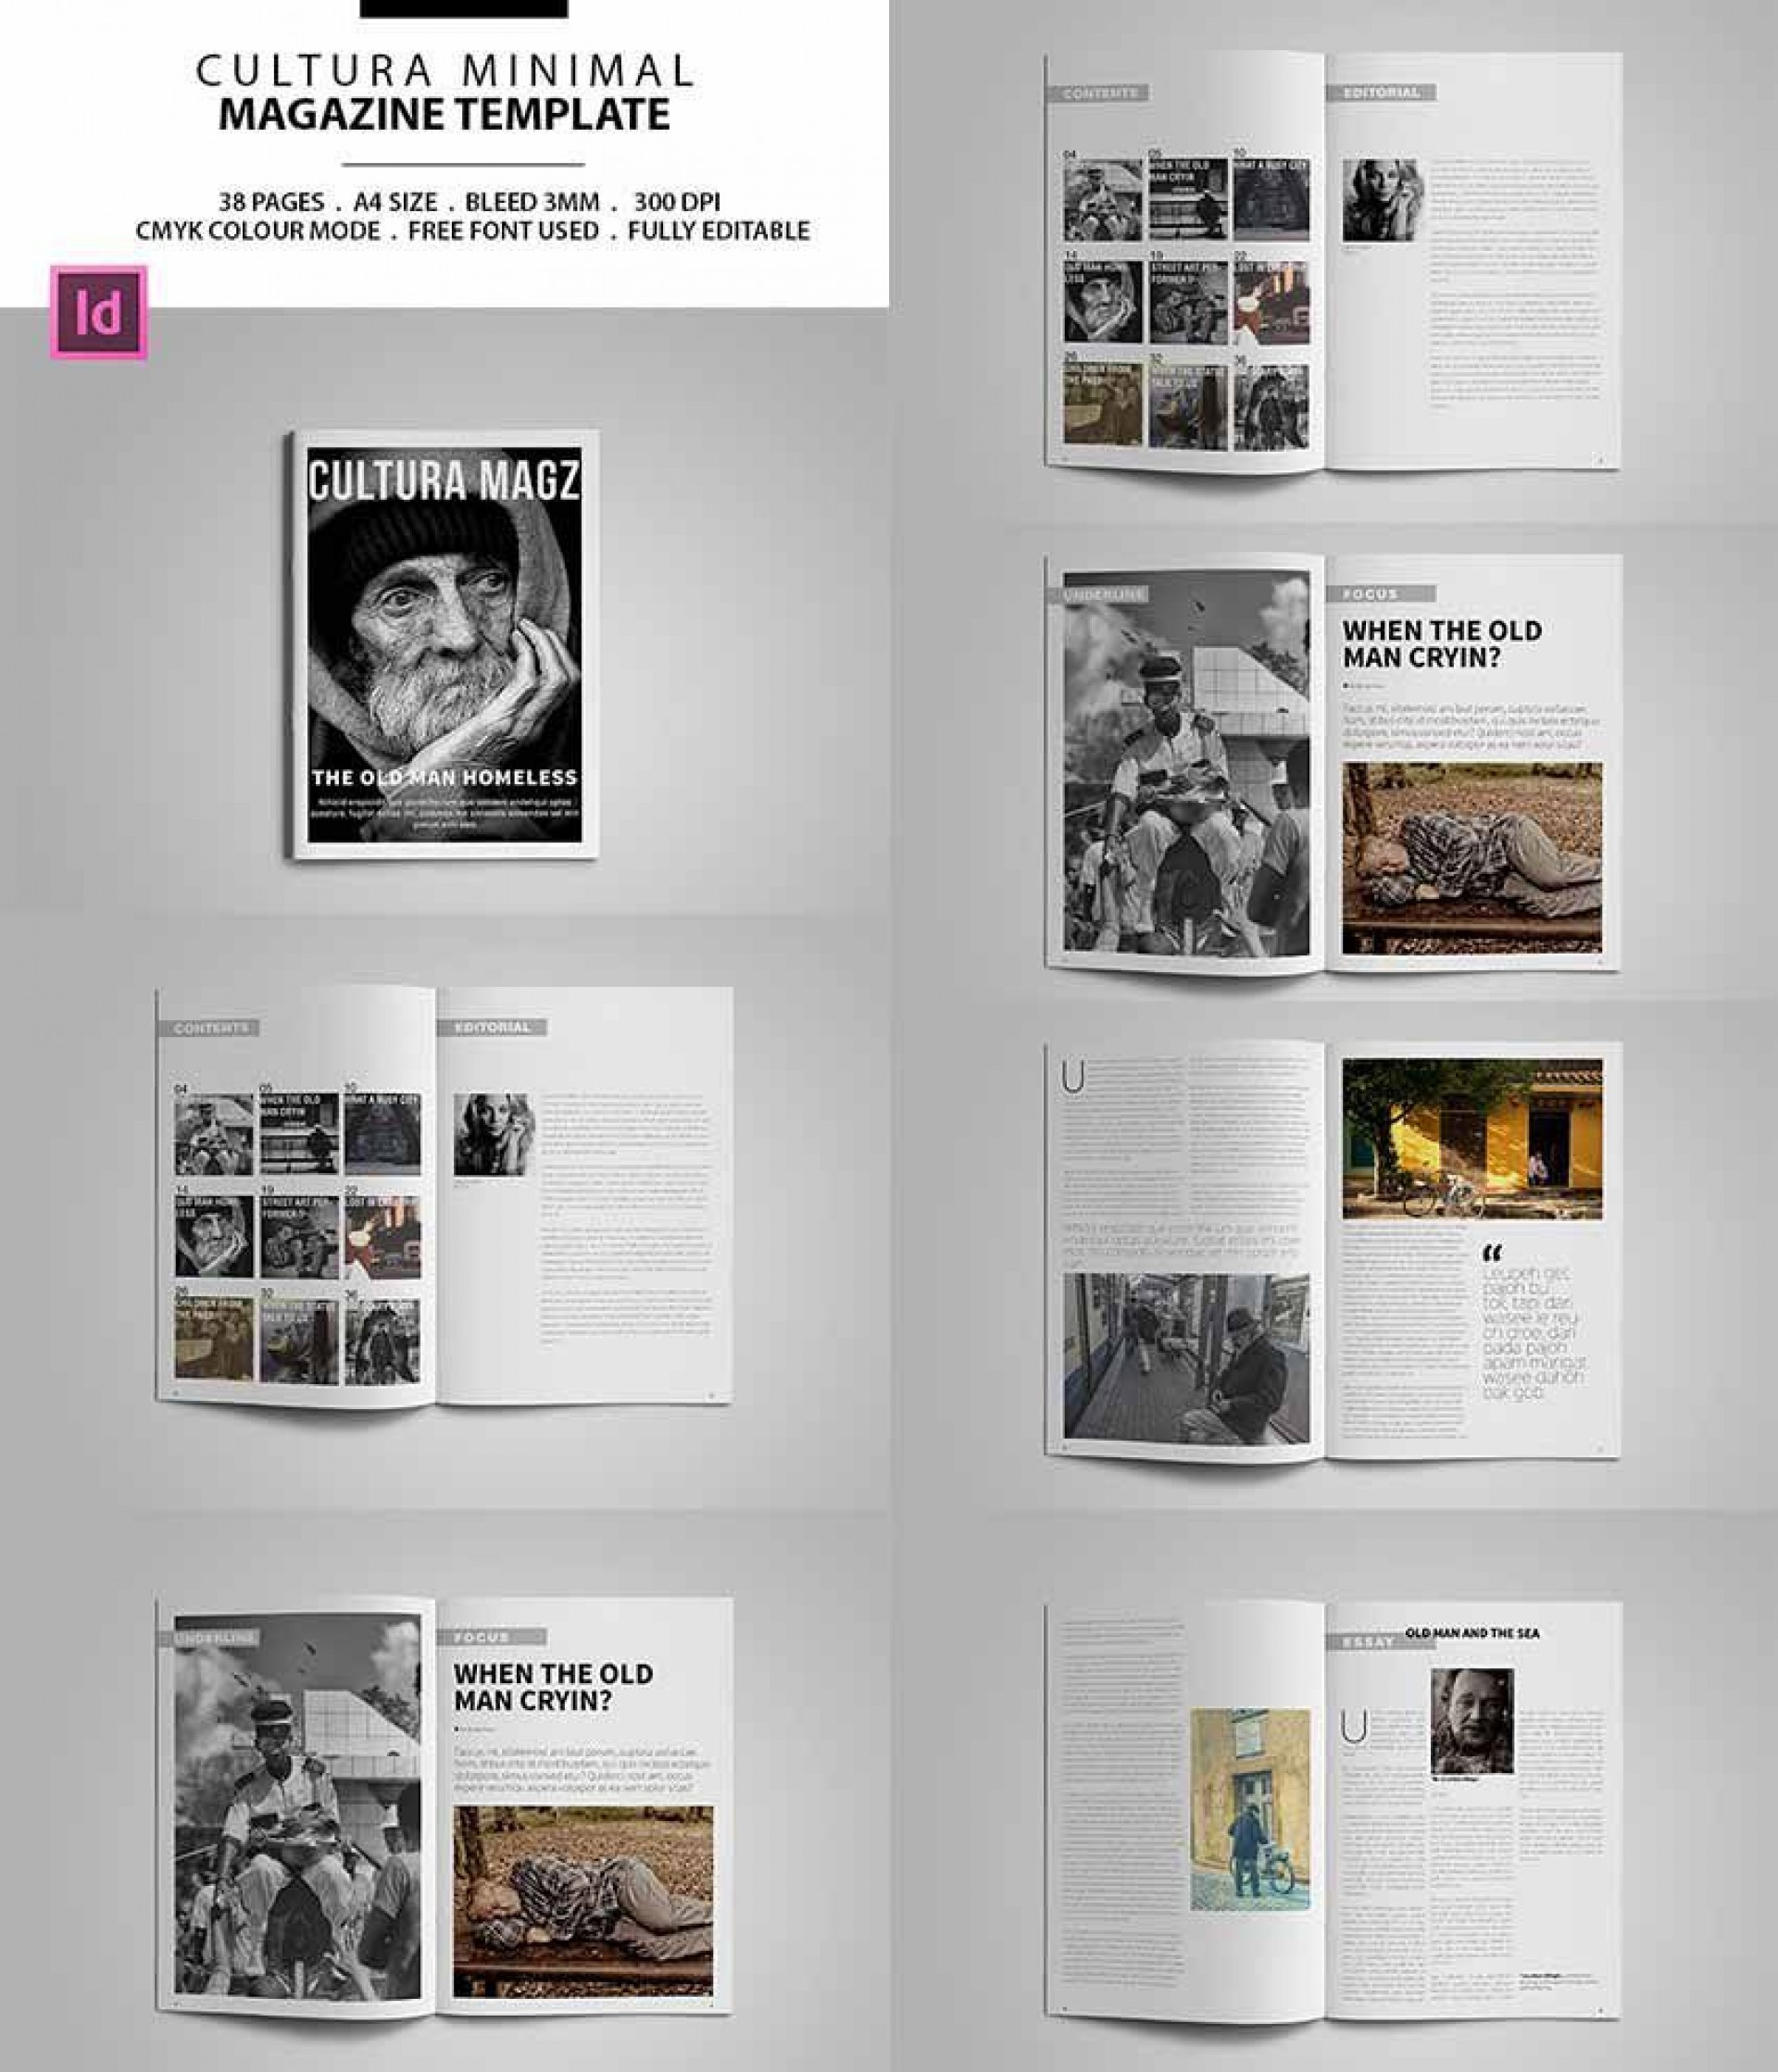 007 Unusual Free Magazine Article Layout Template For Word Highest Quality 1920